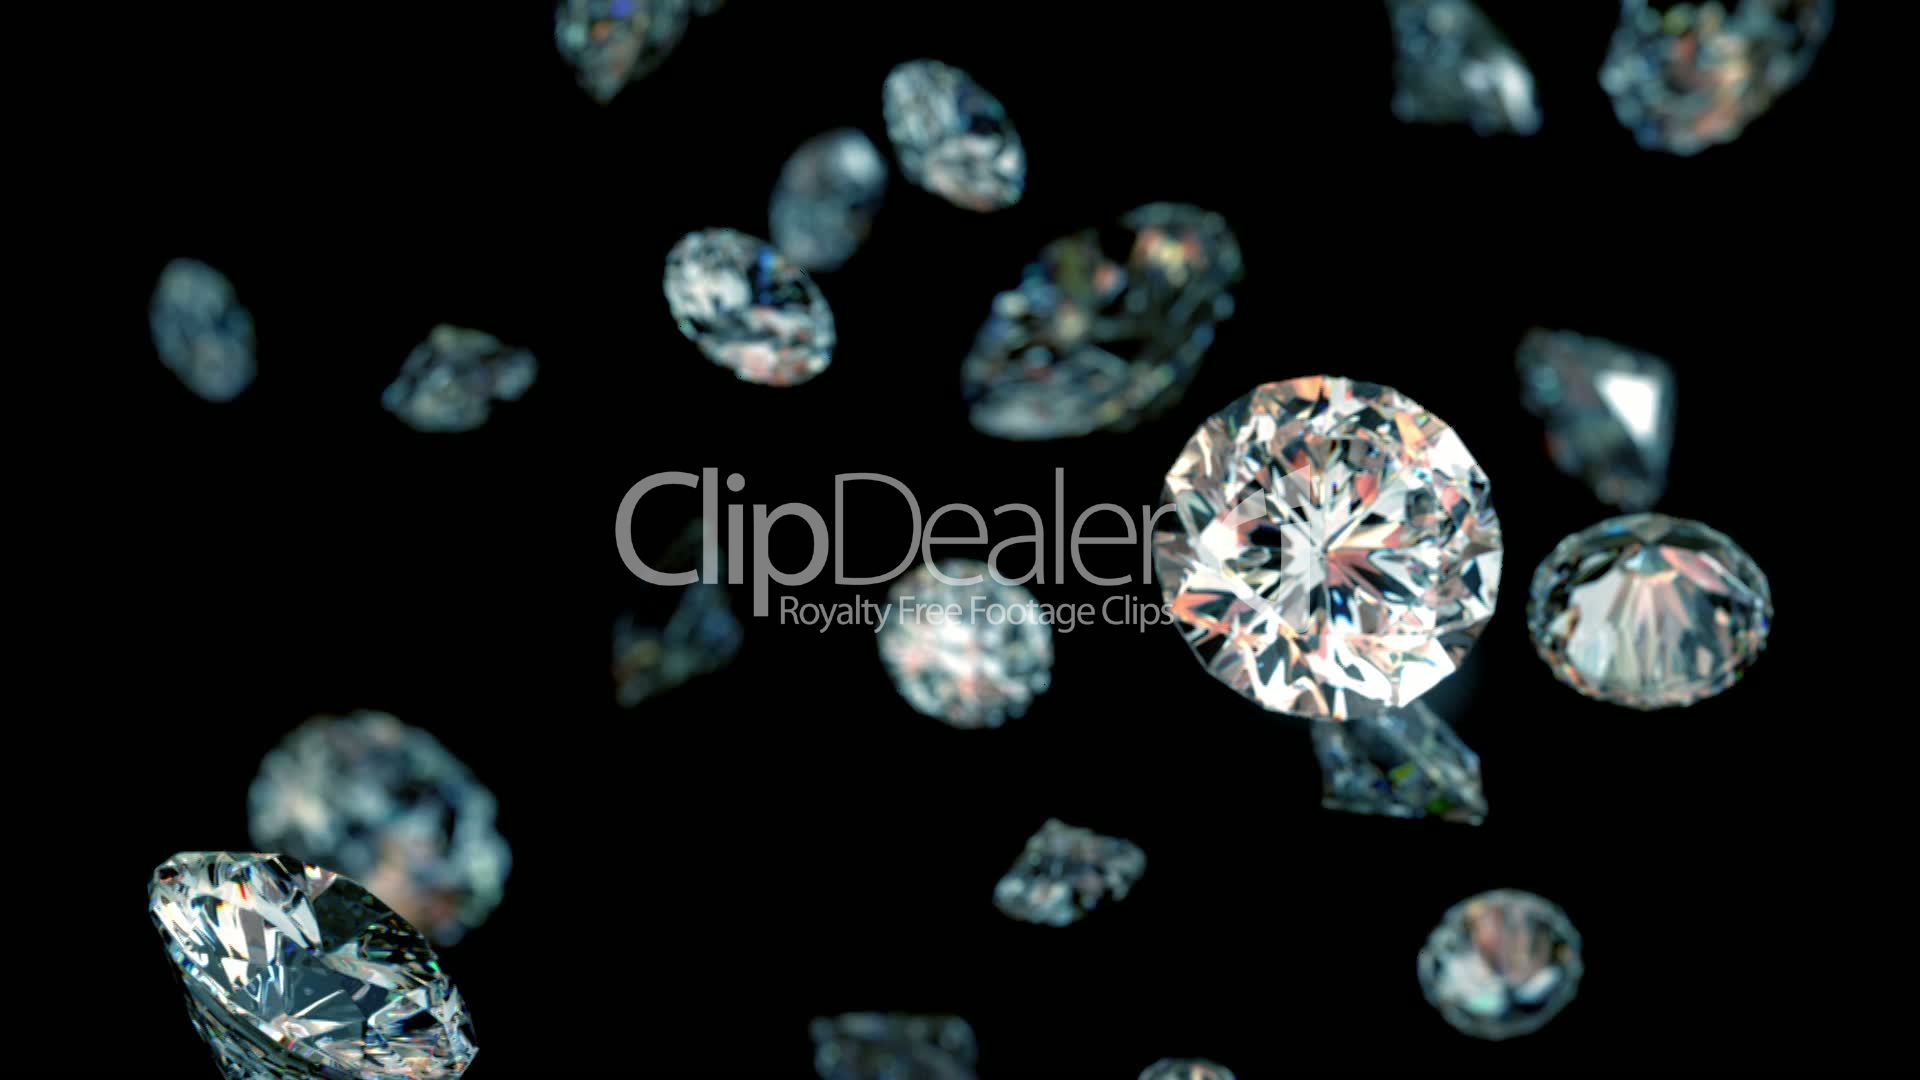 free of background image earrings royalty over pair diamond diamonds stock photo shutterstock isolated black with